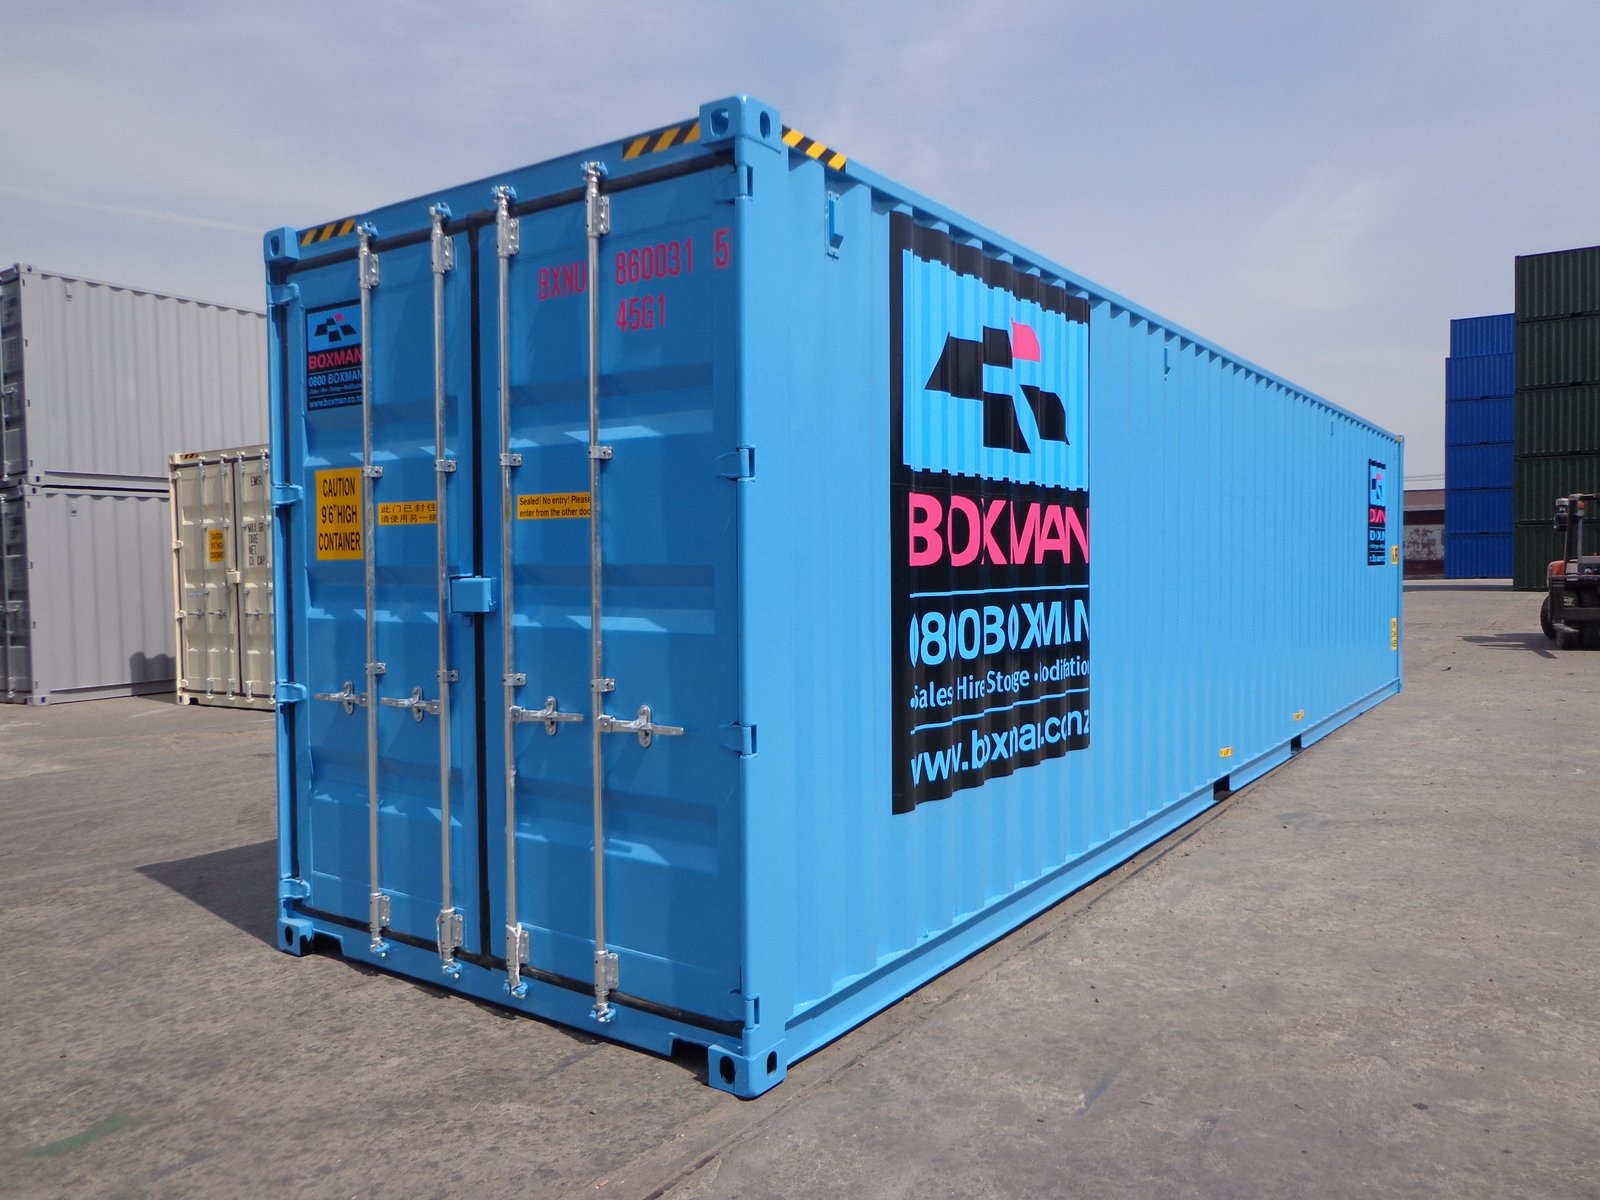 A brand new Boxman 40 foot High Cube container.